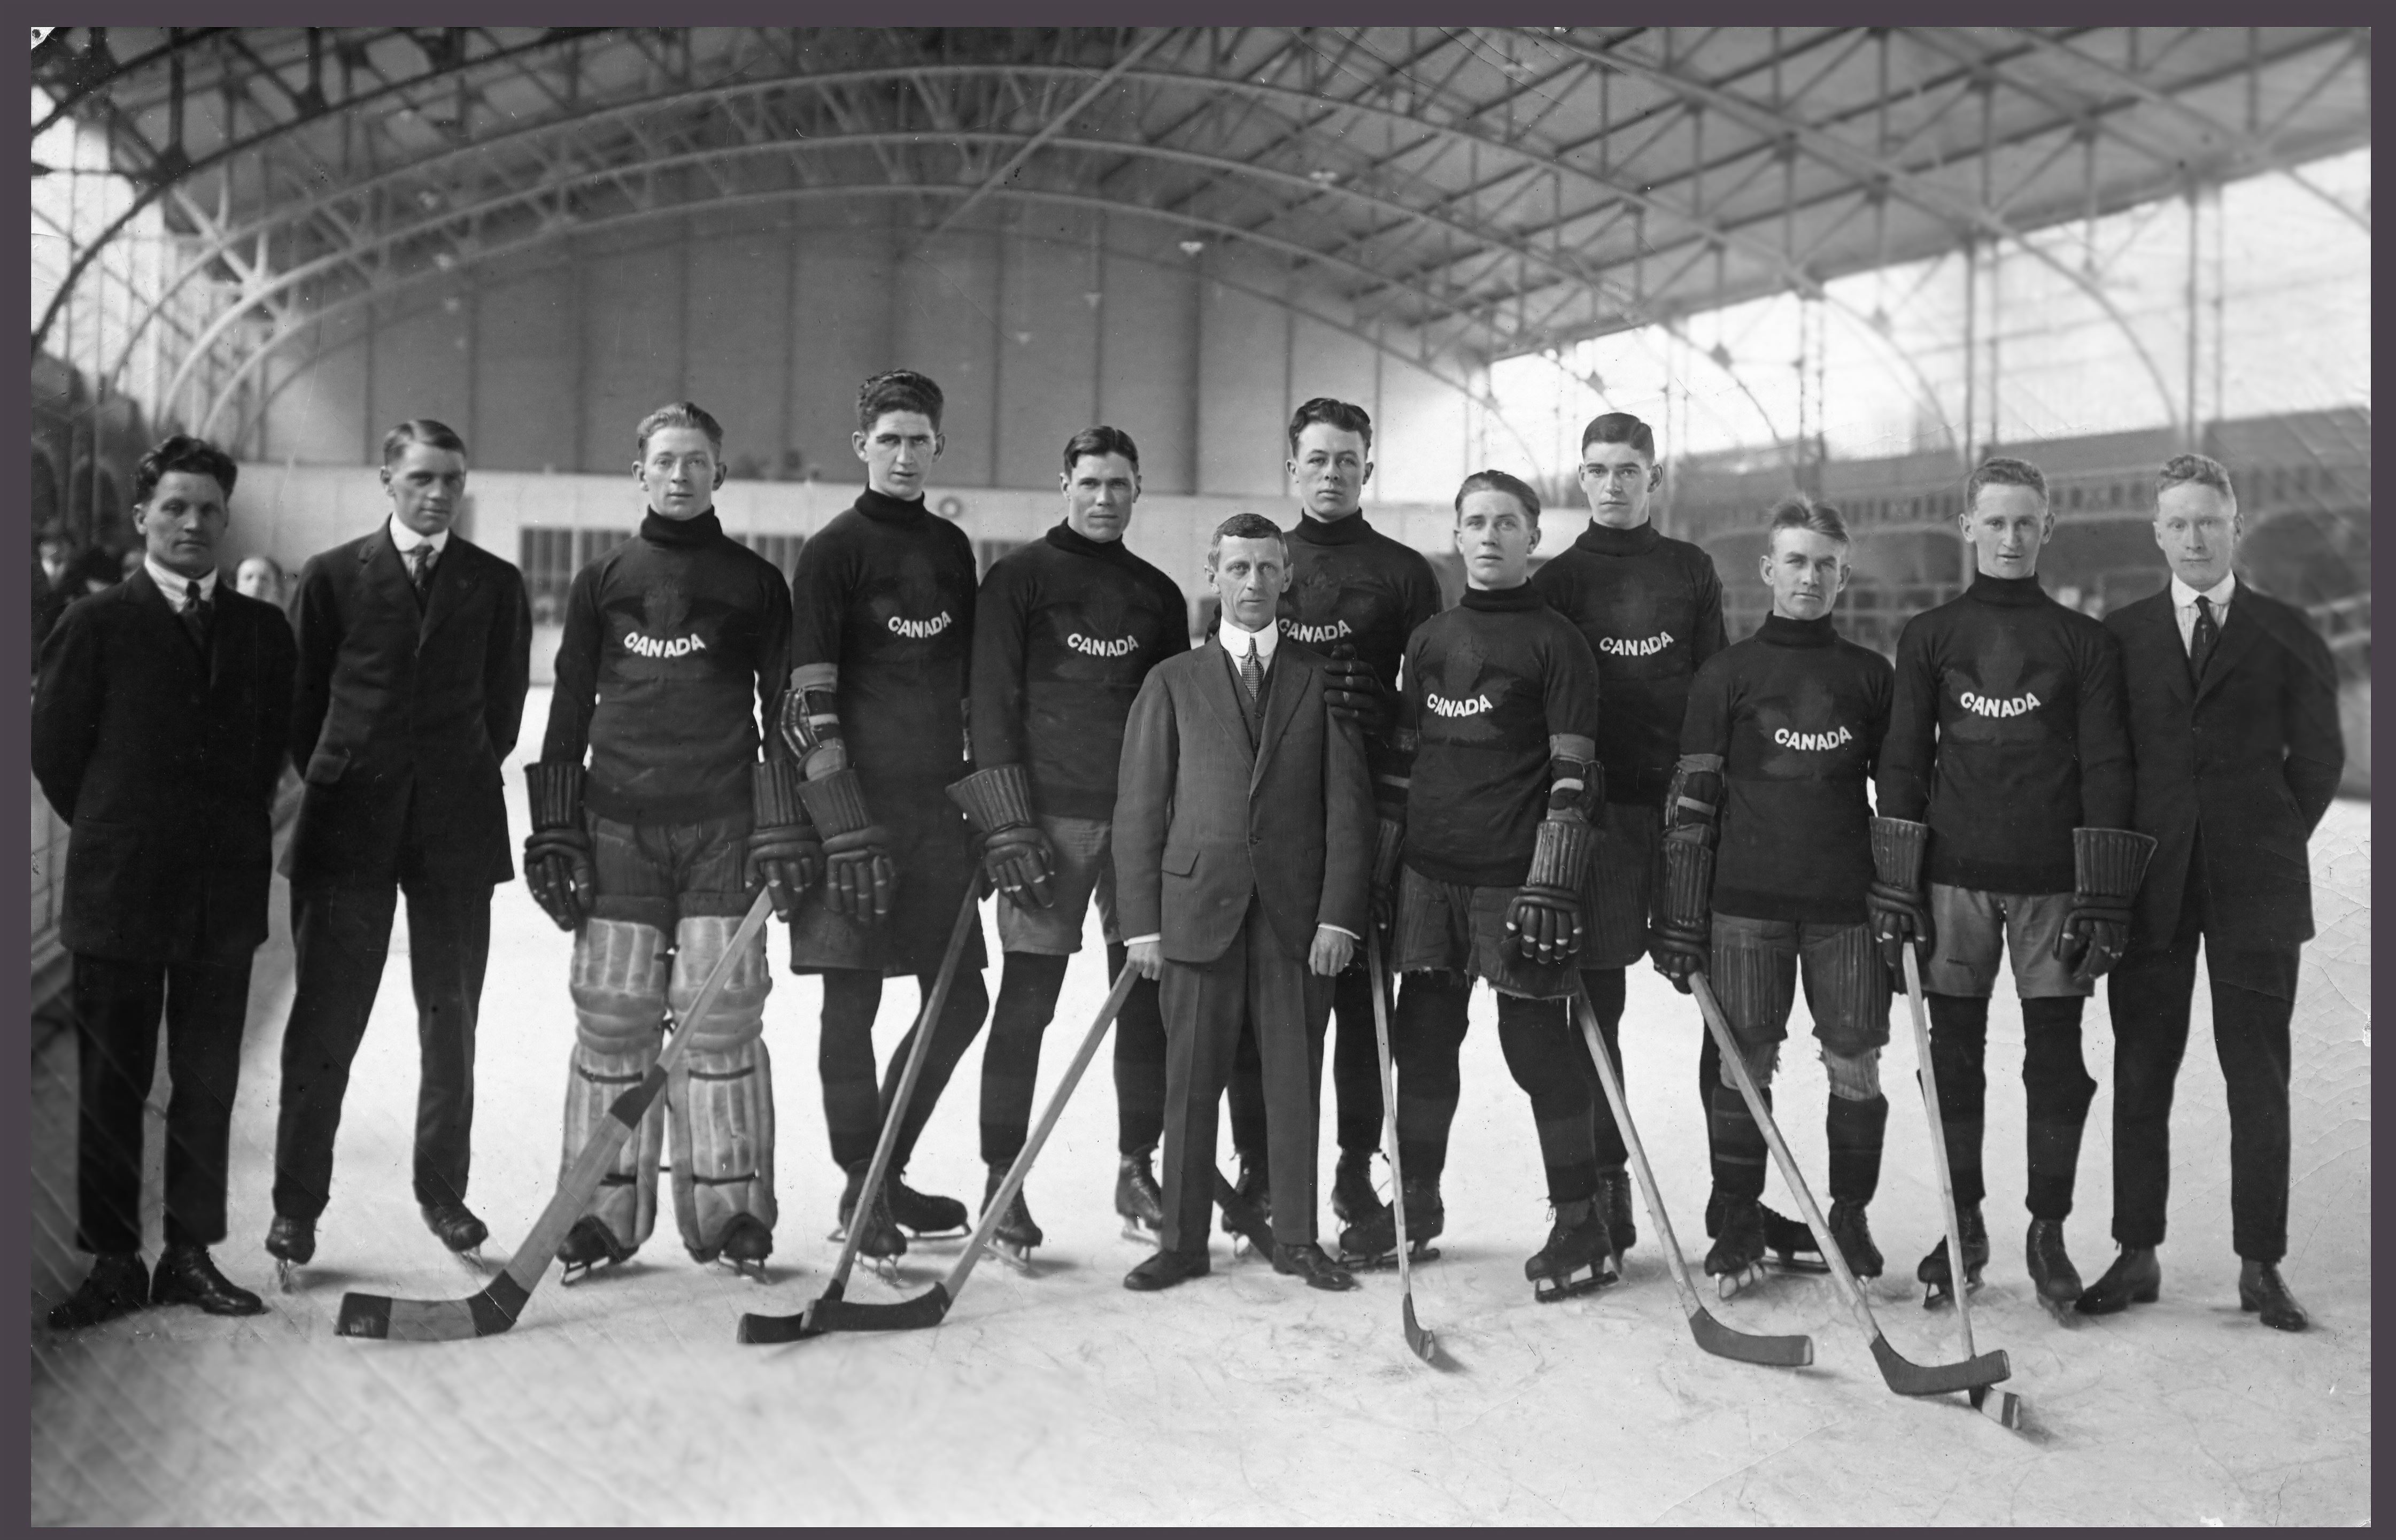 Members of the 1920 Canadian Olympic hockey team